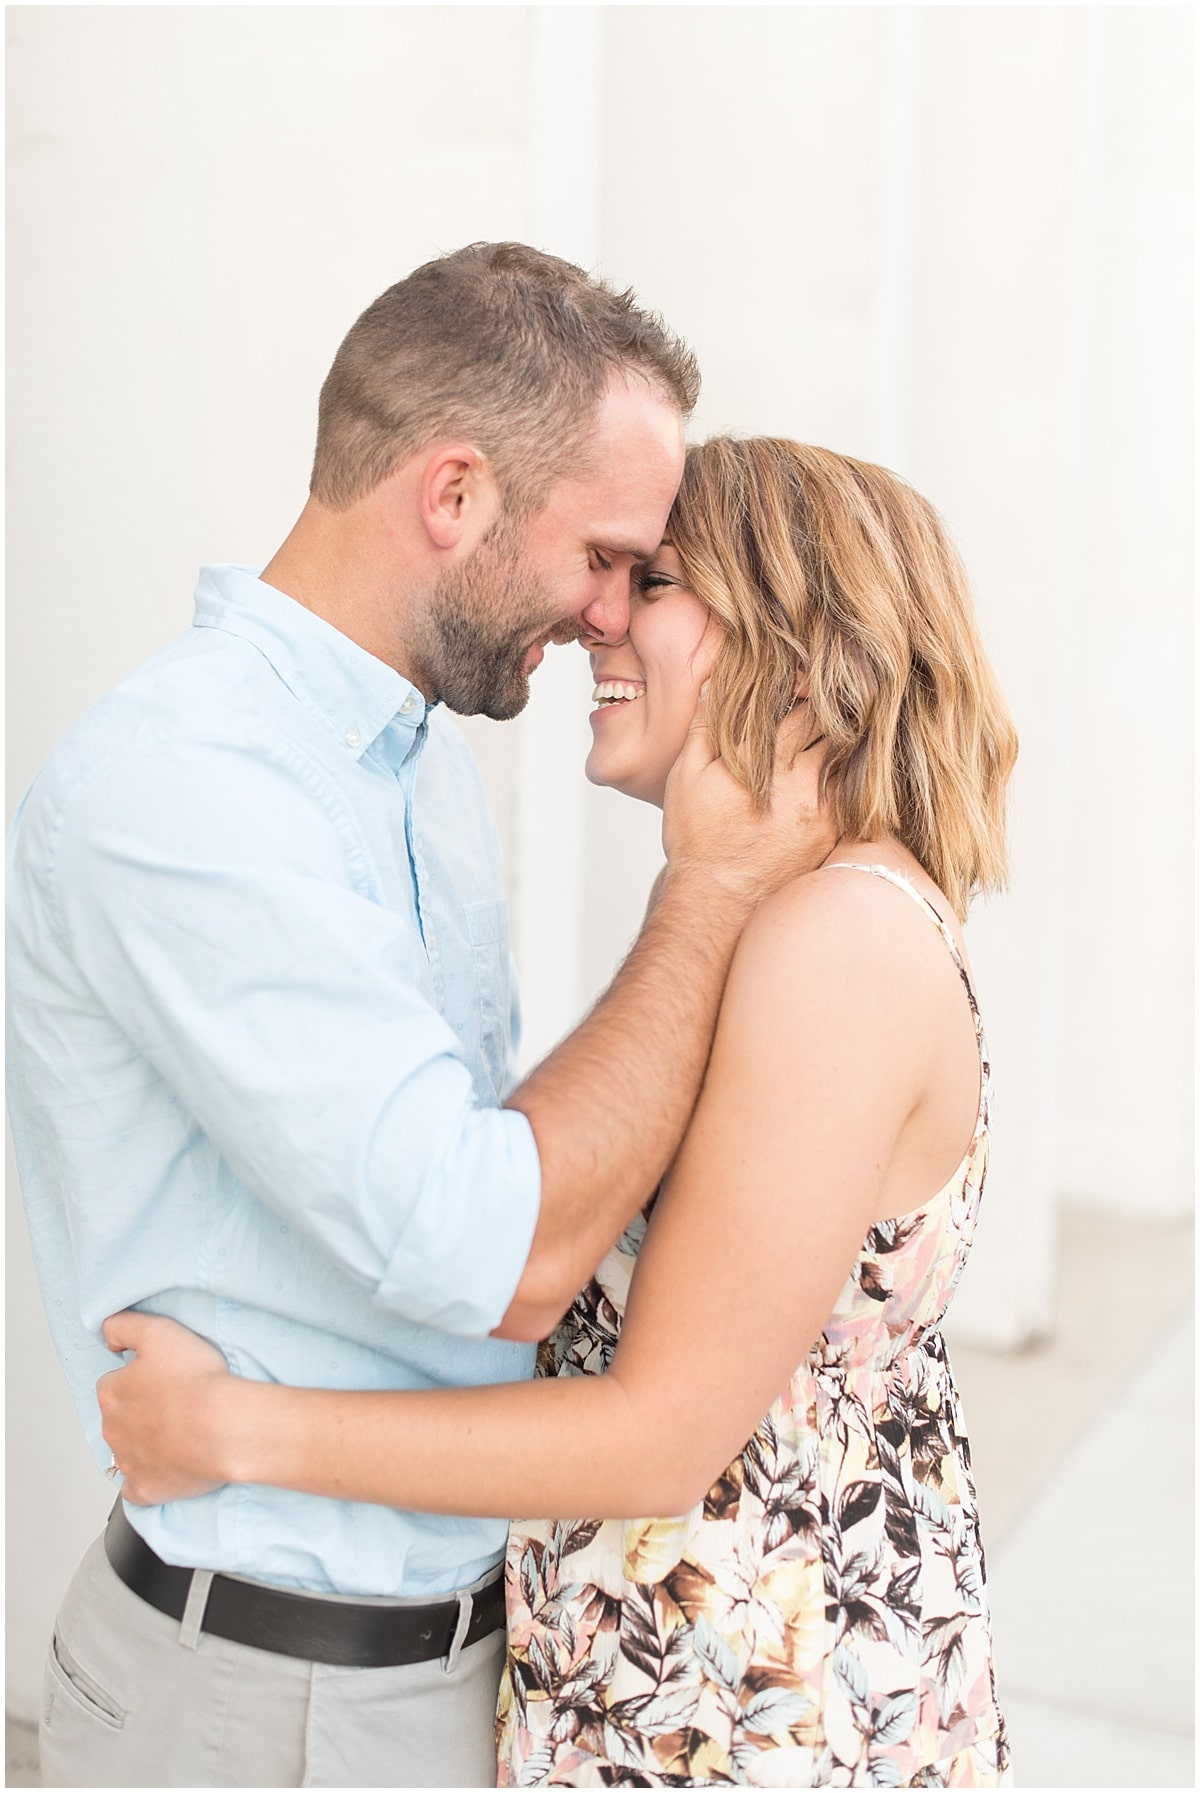 dating in lafayette indiana and dating daan doctrine